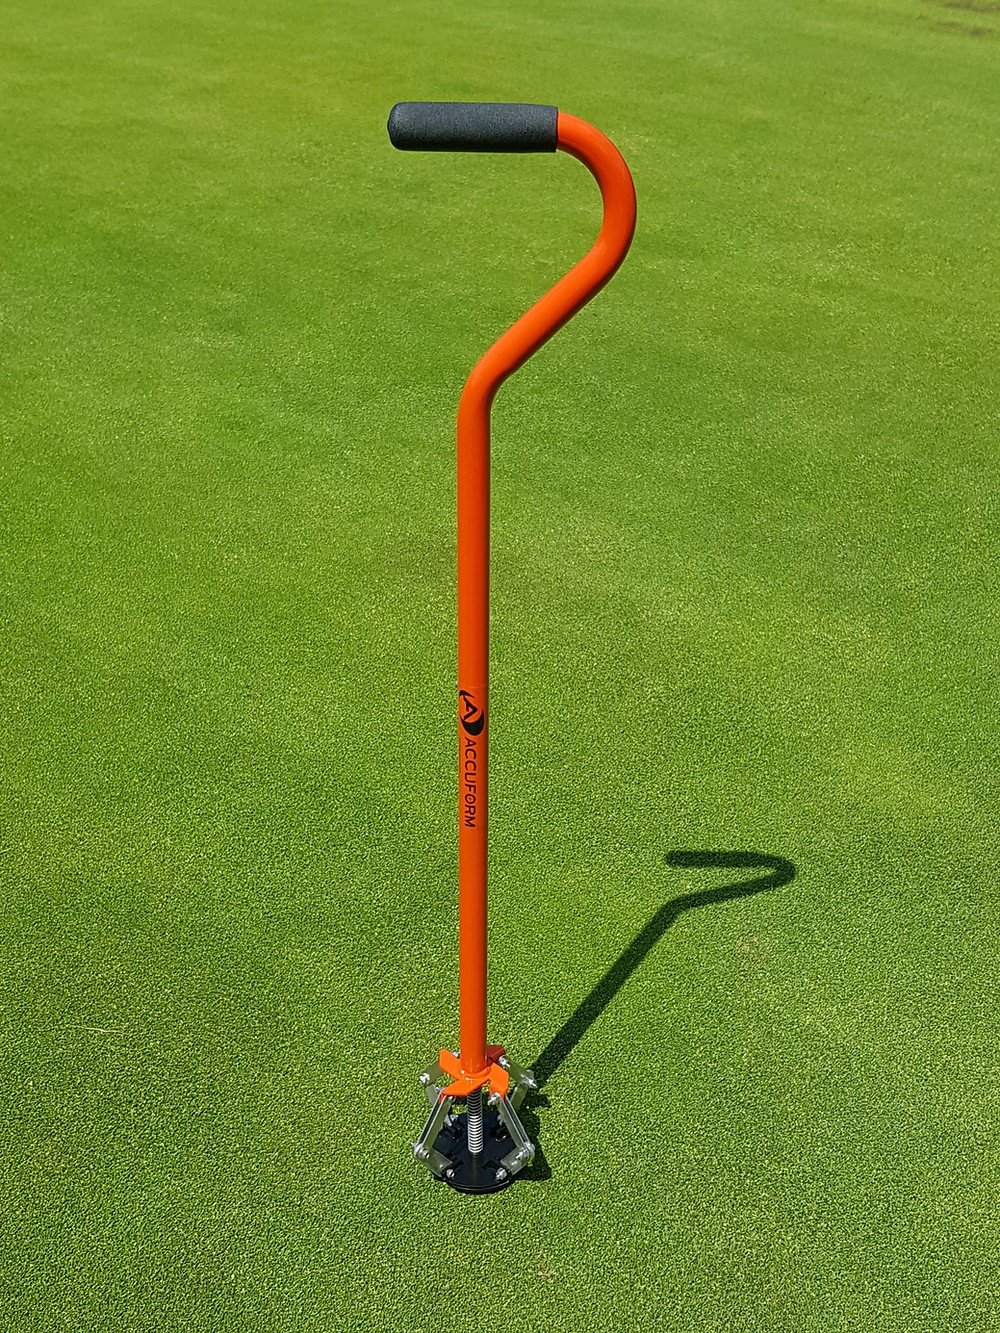 Repair Pitchmark Tool